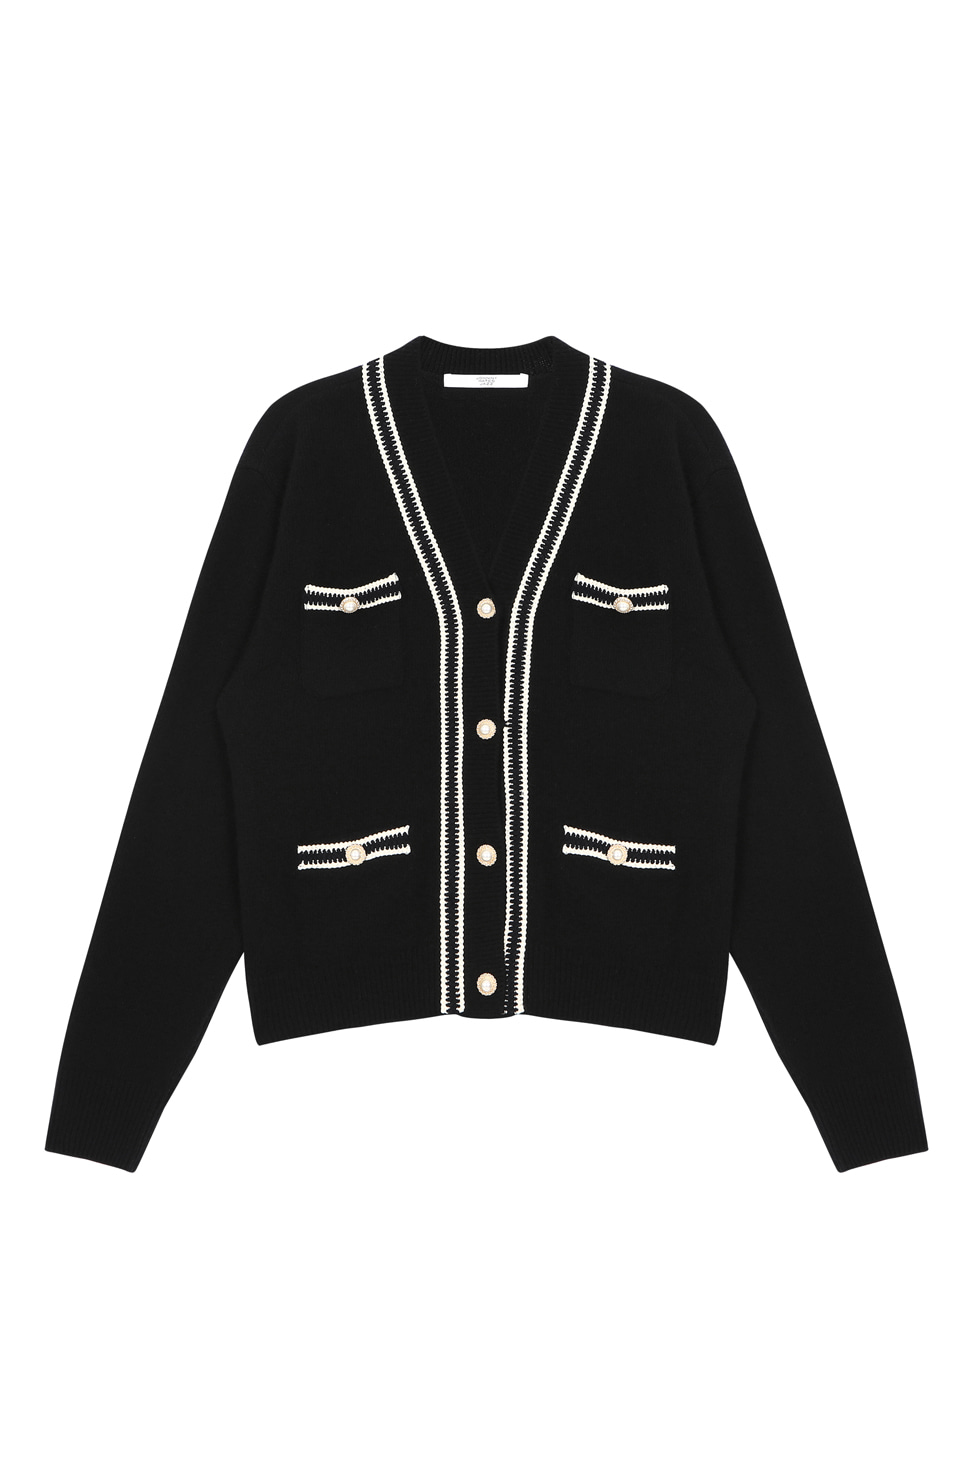 PEARL BUTTON CARDIGAN - BLACK